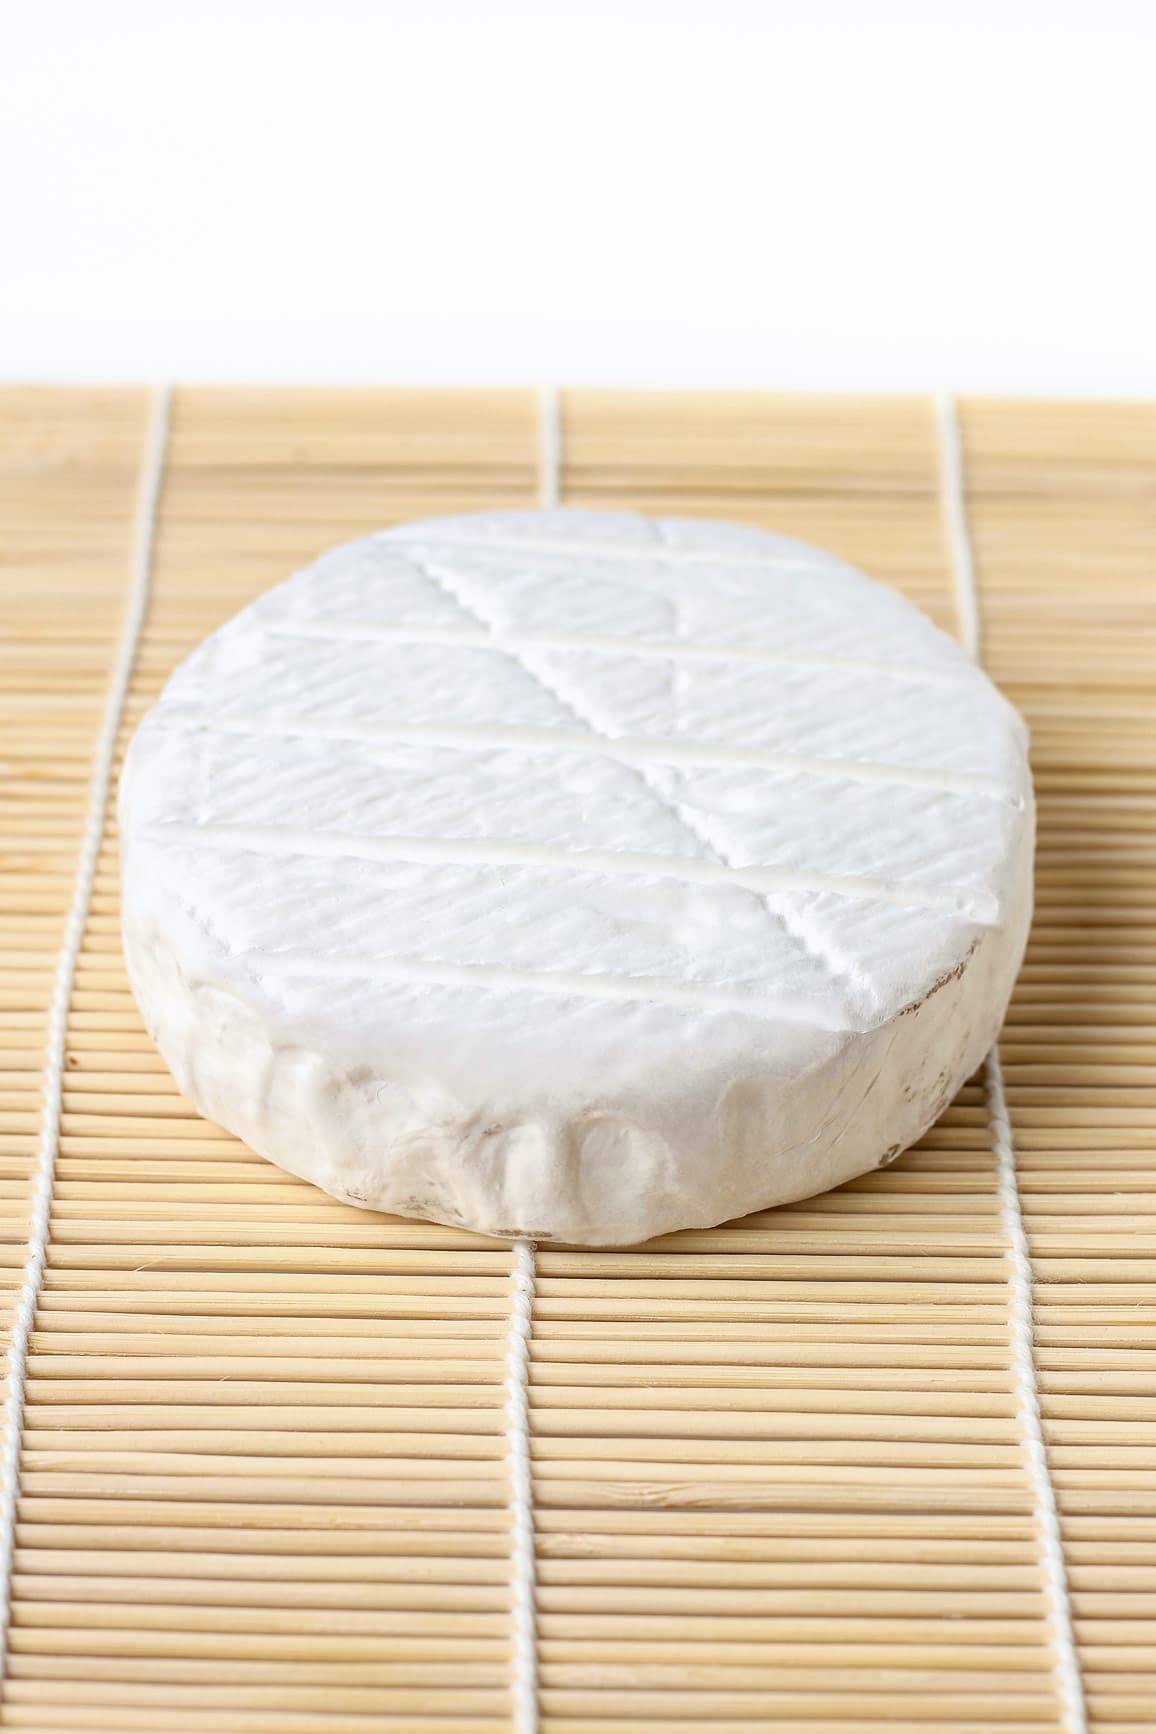 Vegan Aged Camembert Cheese